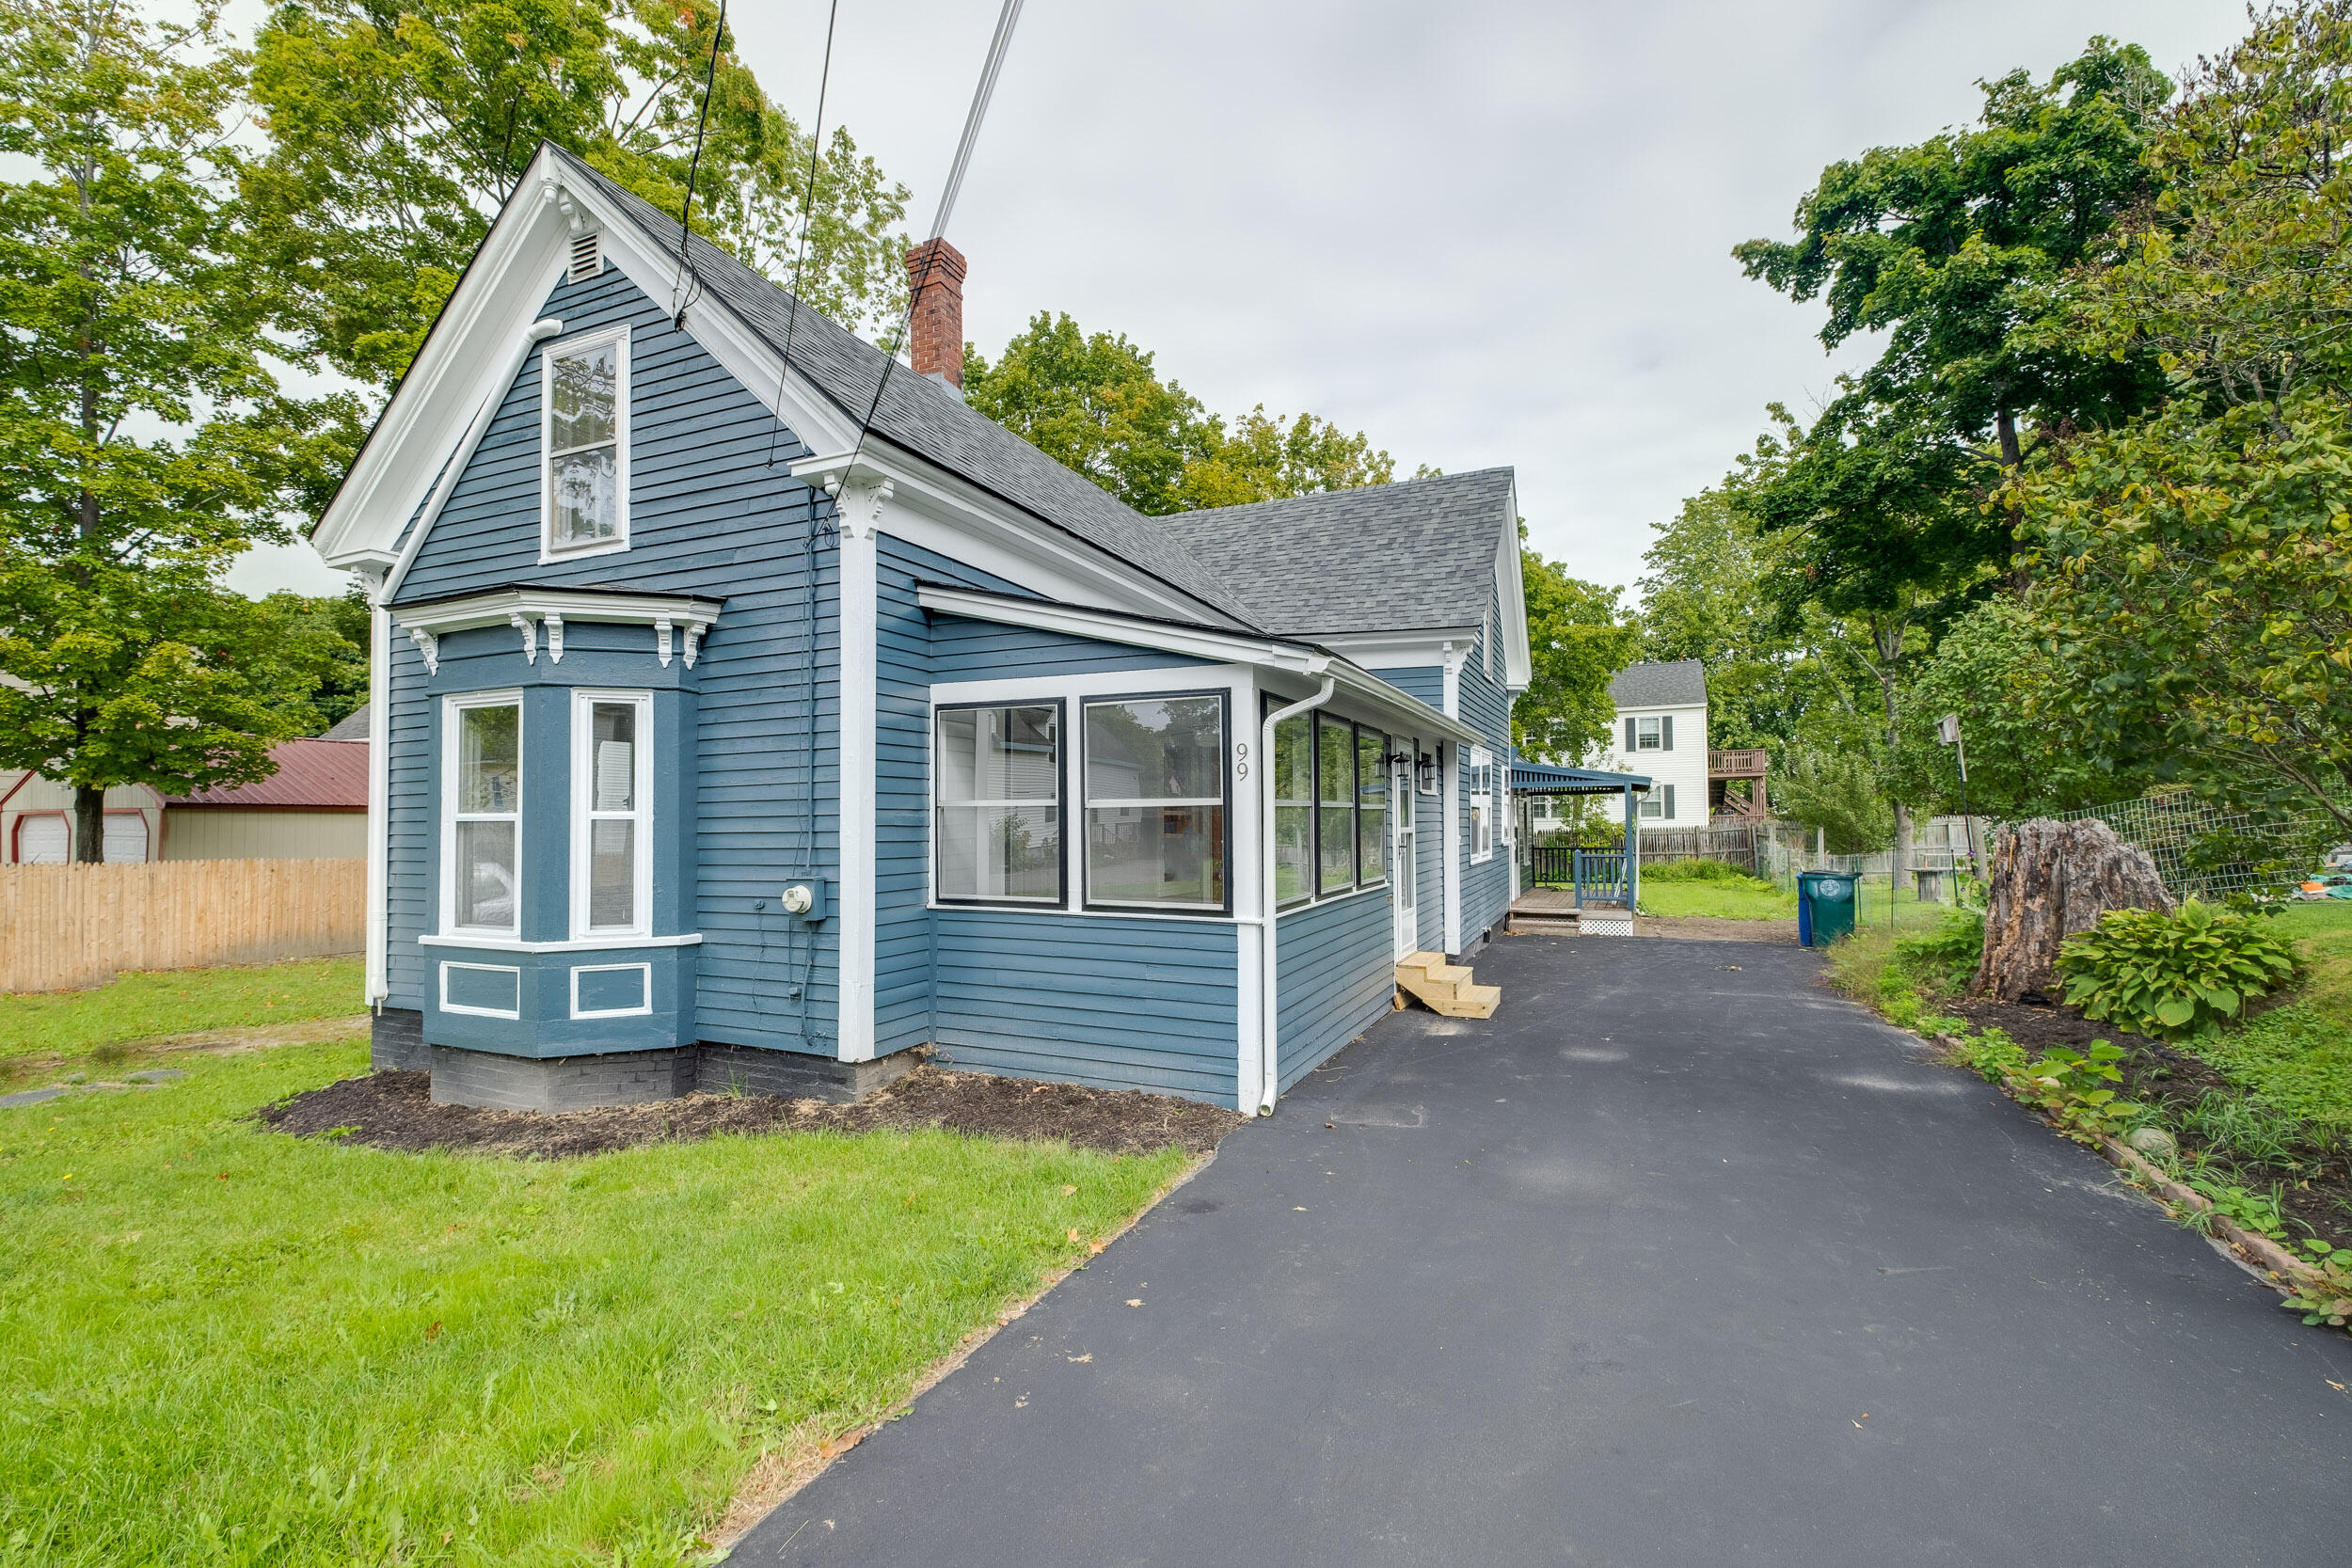 Main image for MLS listing 1509950